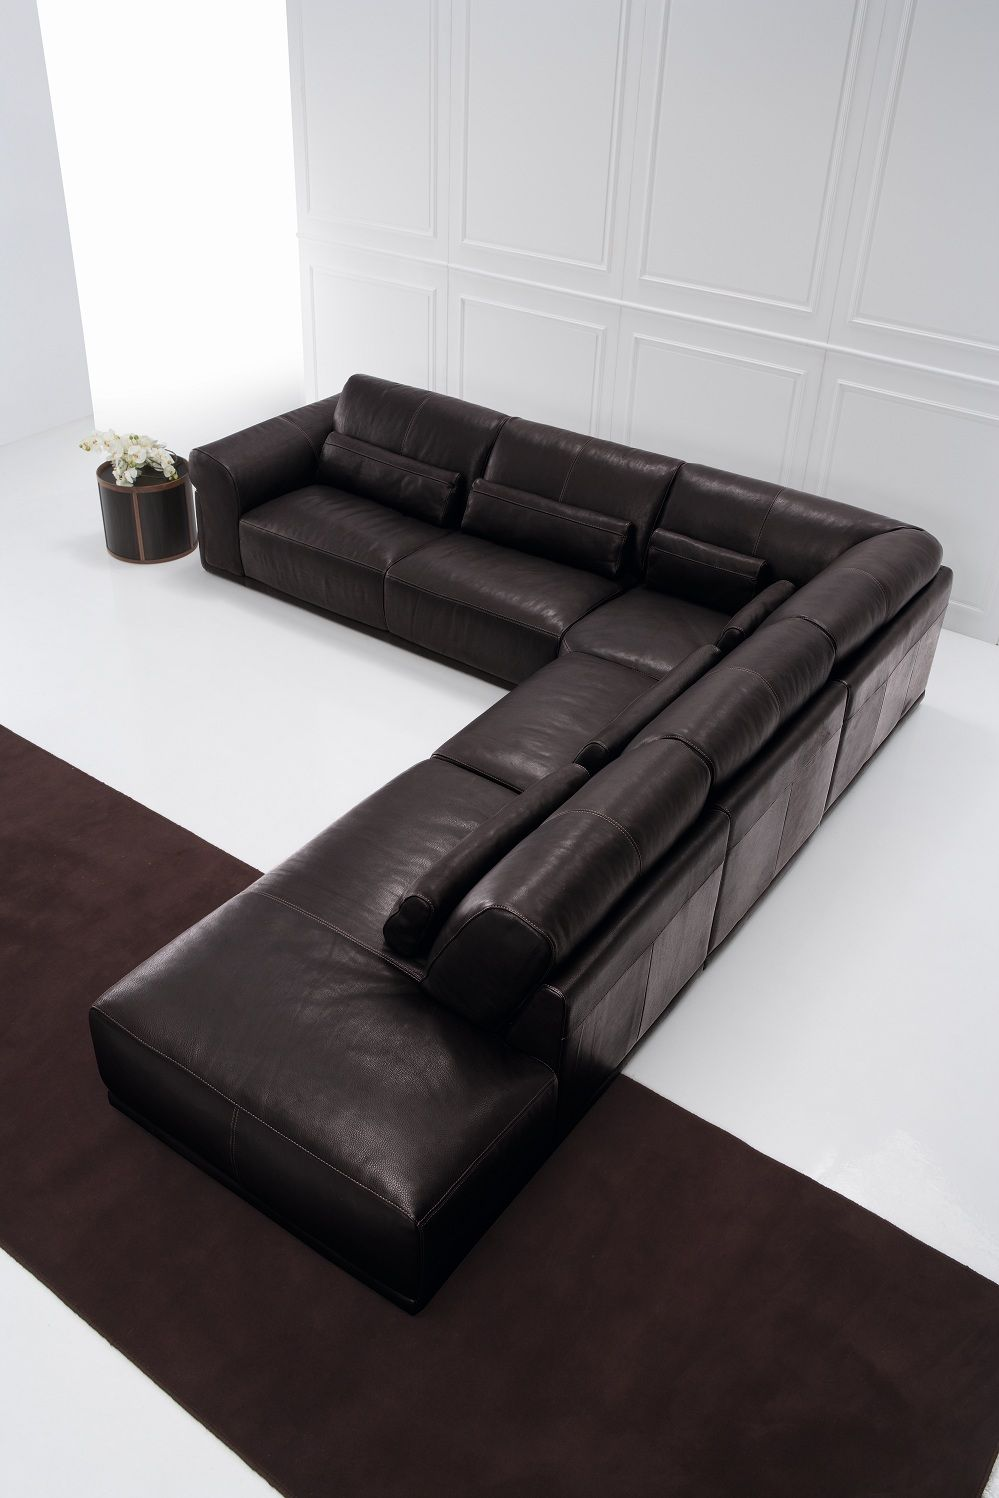 Fabio And Co Is Proud To Offer You 100 Genuine Italian Sofas Over 200 Exclusive Models To Choose From You Won T Fi Italian Sofa Italian Leather Sofa Italian Furniture